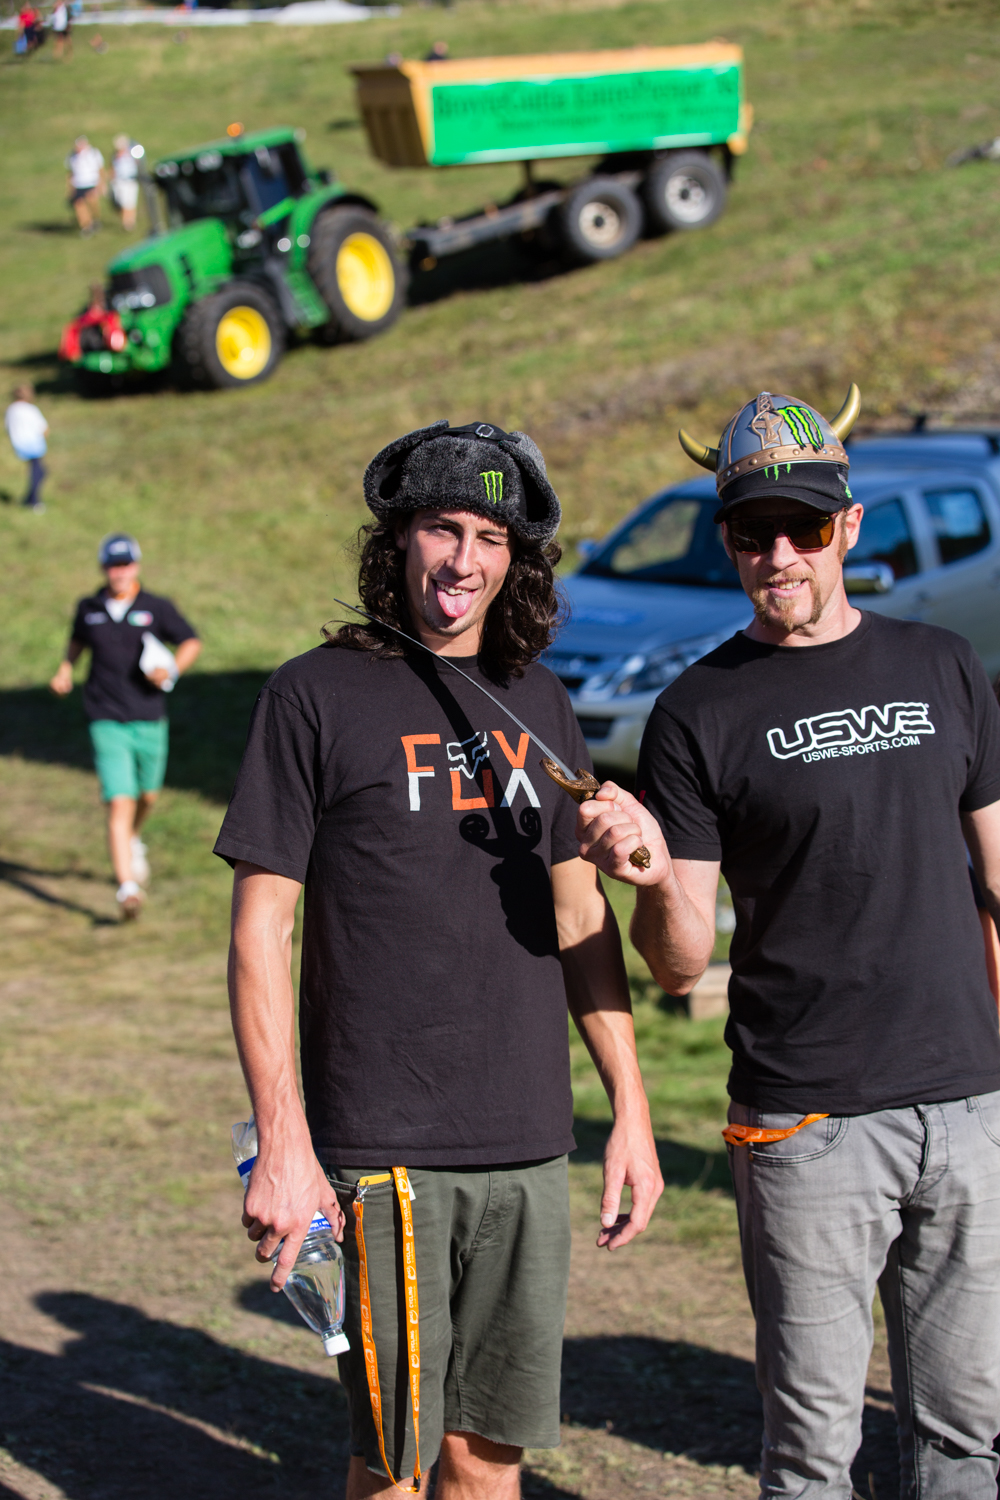 Josh Bryceland (L) and Steve Peat (R). Both World Cup Downhill winners and Steve, a World Champion.